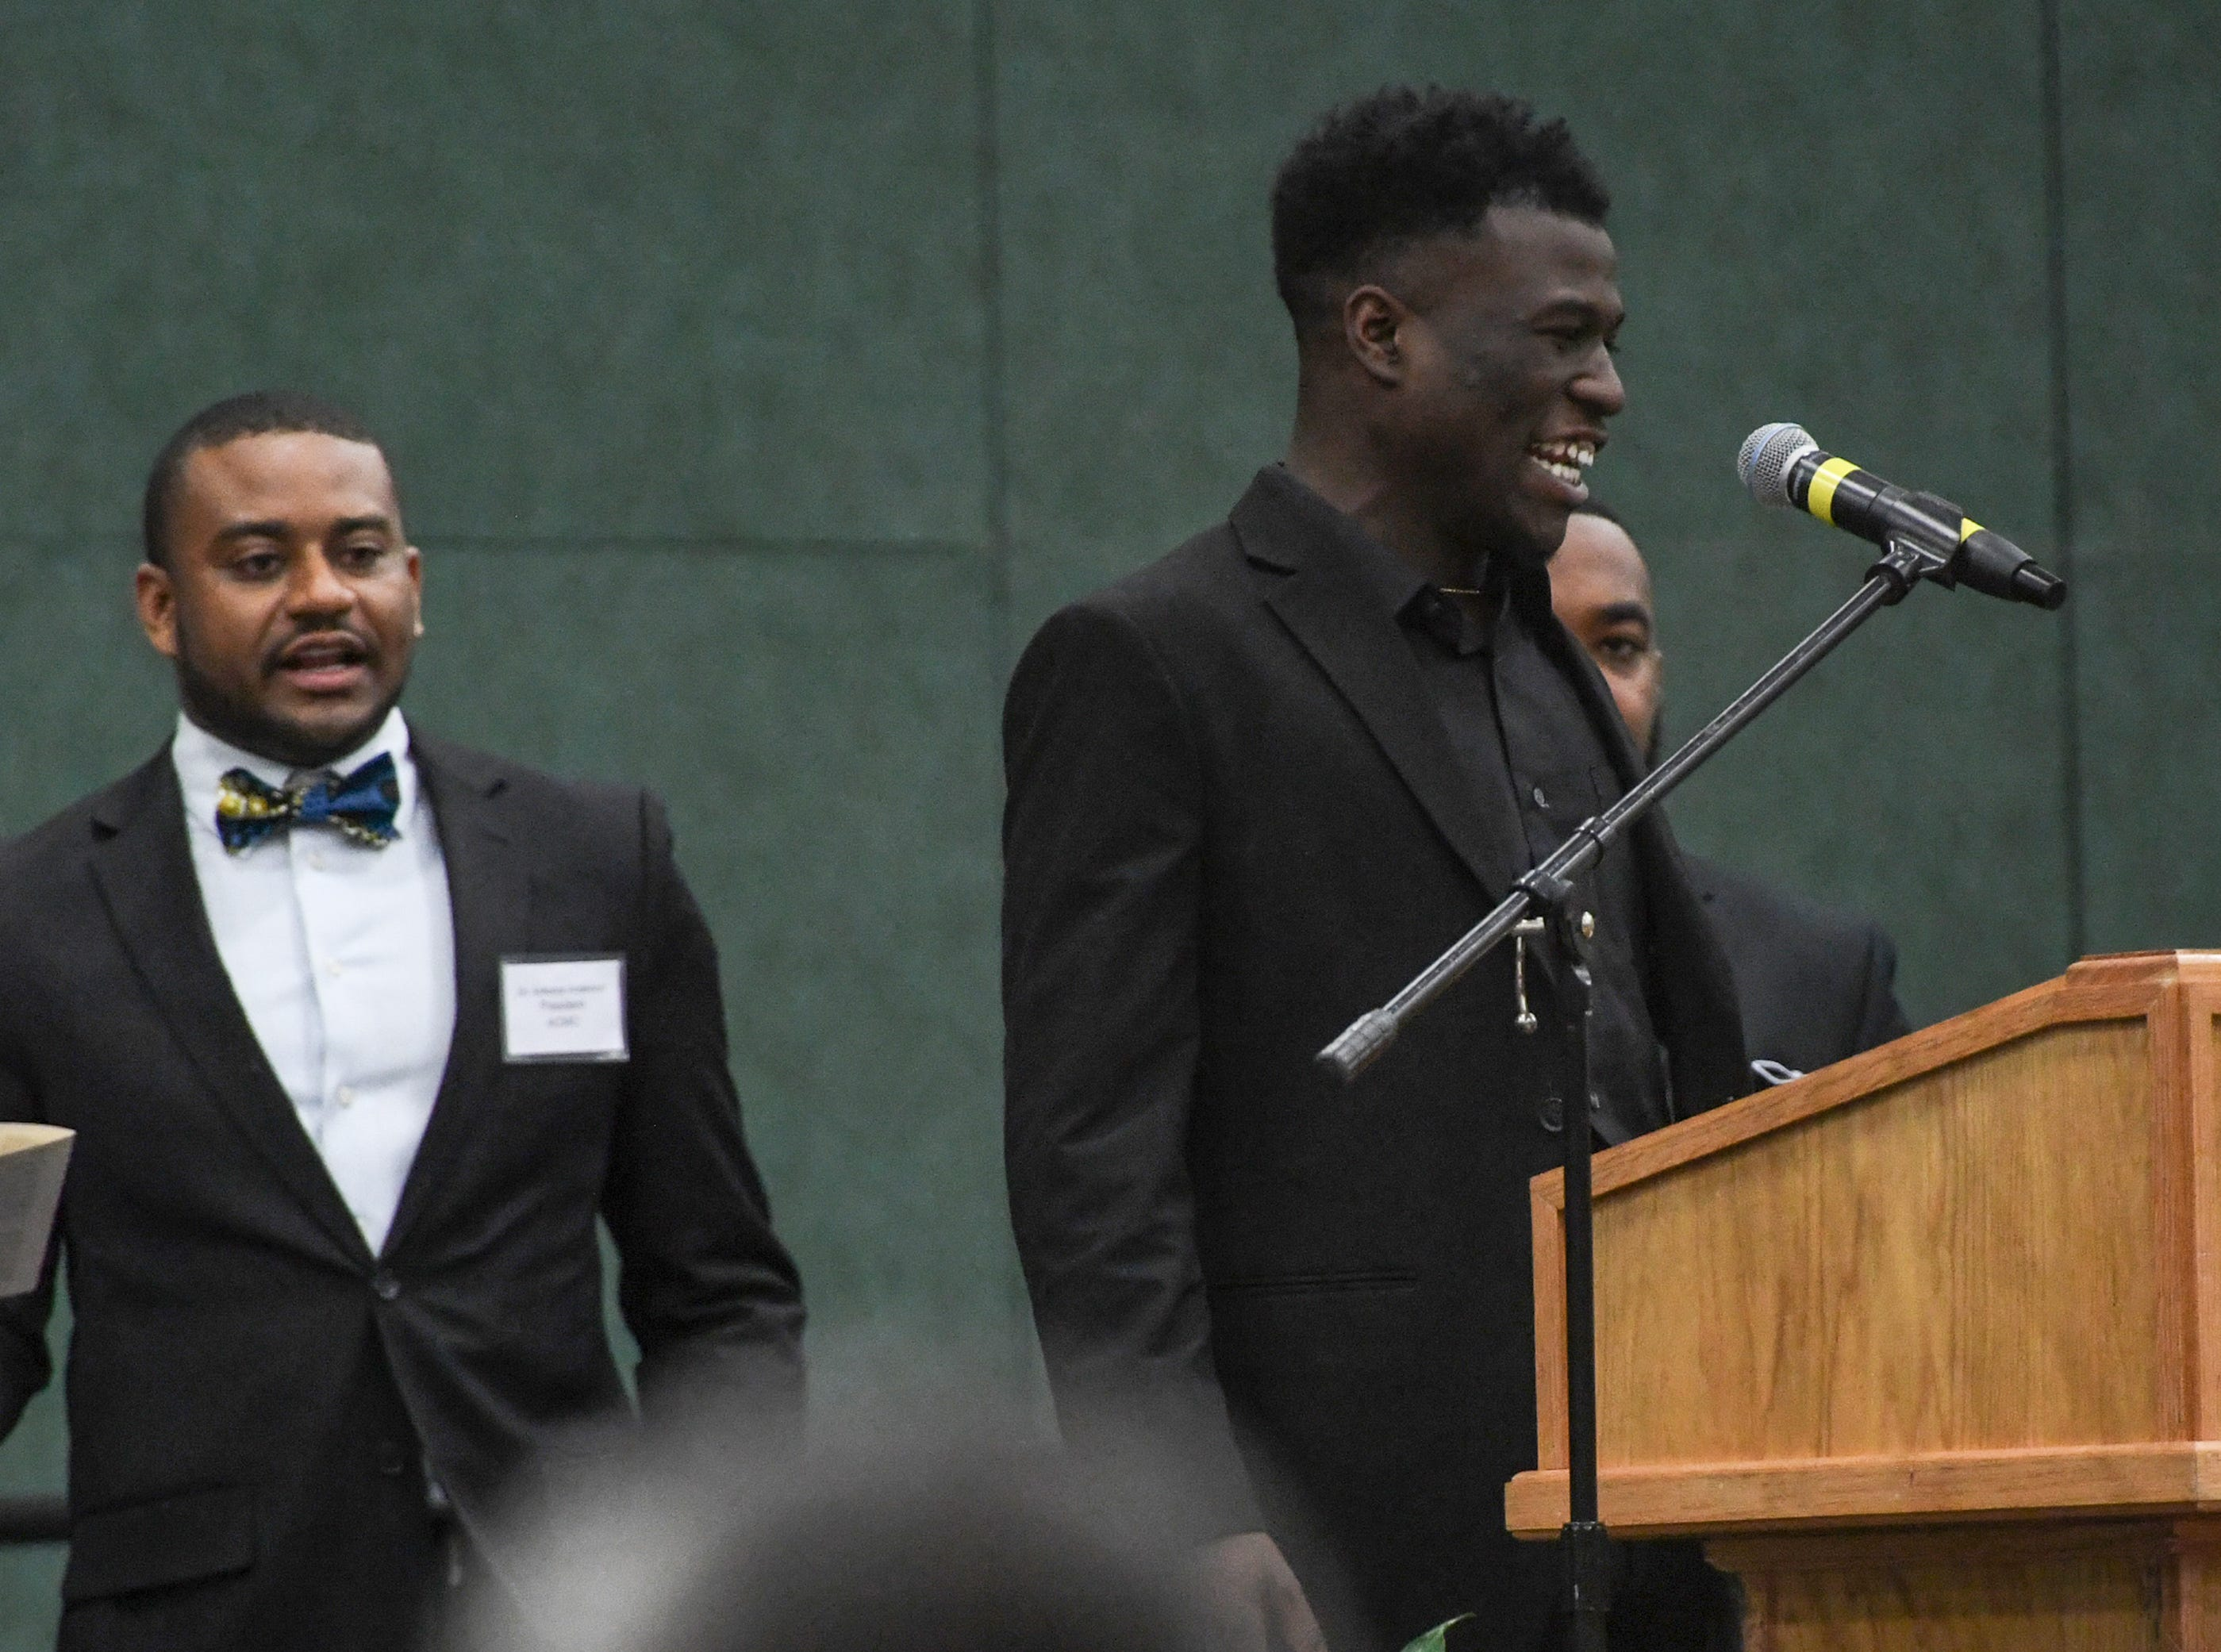 Malek McDuffie speaks during the Anderson County Martin Luther King, Jr. Celebration in Anderson January 21, 2019. This yearÕs keynote speaker is Cyrus Birch, Charleston native and community activist, who works as a model and stunt performer, seen as a Jabari warrior in the megahit ÒBlack Panther.Ó